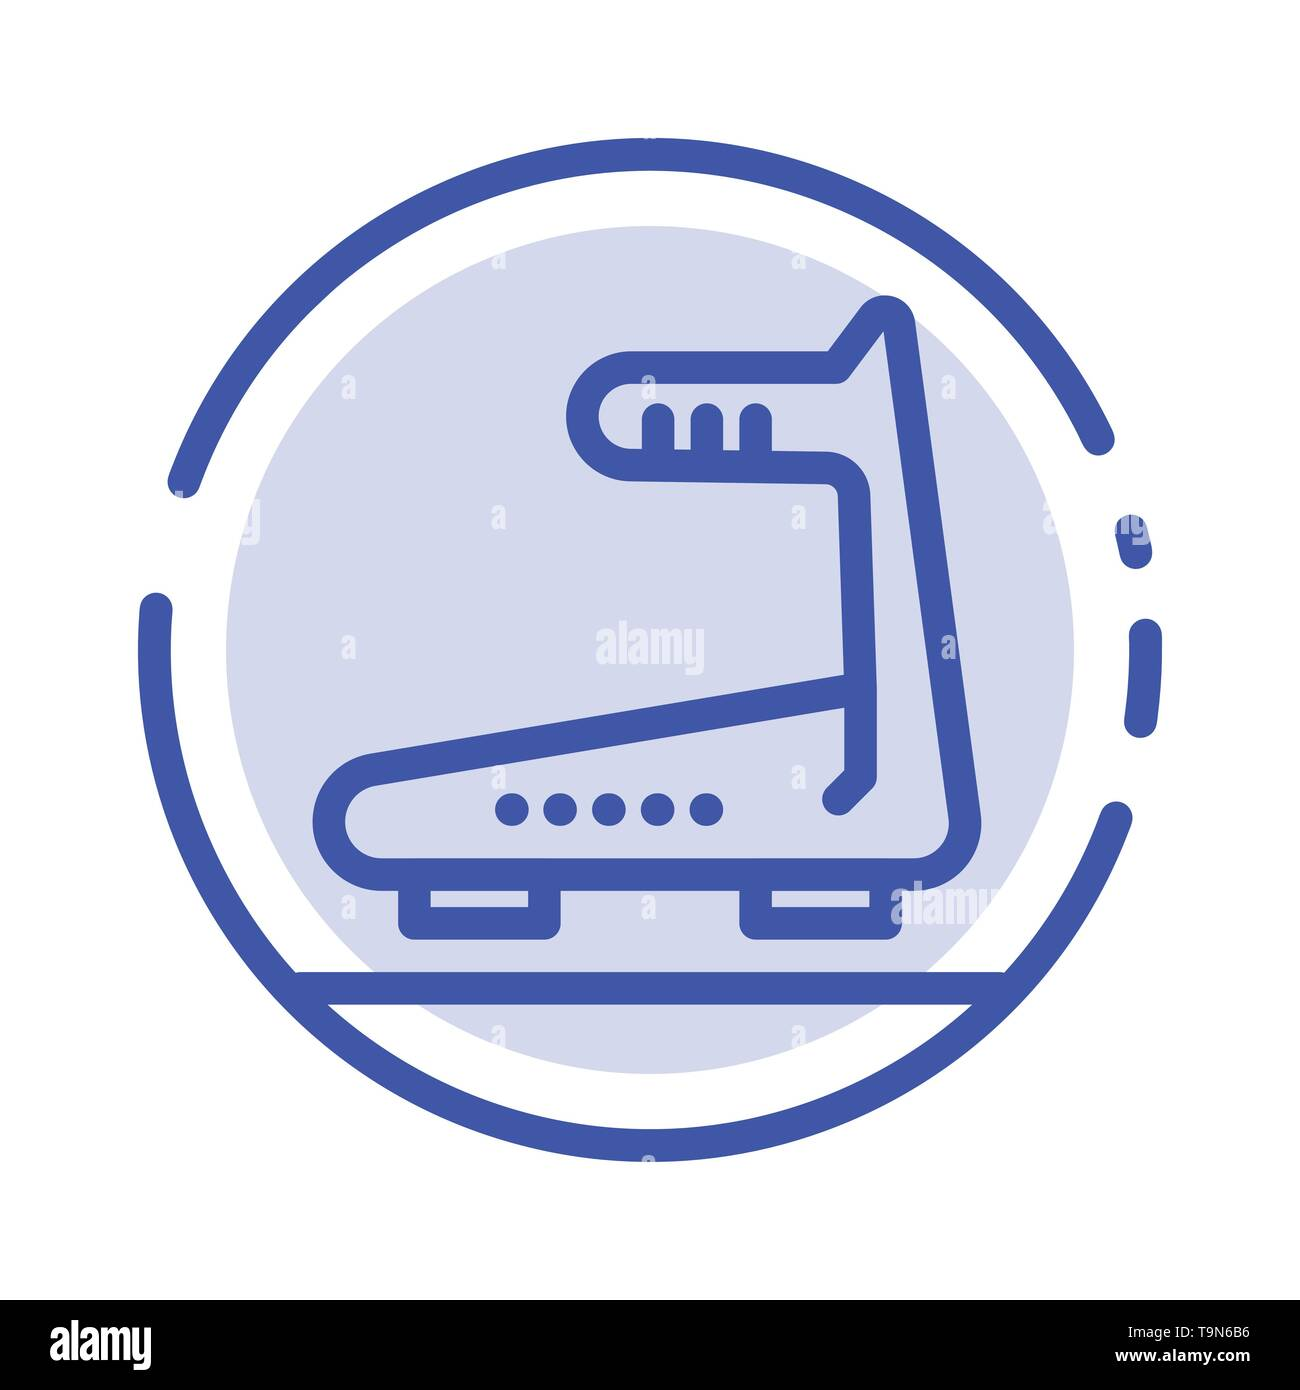 Machine, Running, Track, Treadmill Blue Dotted Line Line Icon - Stock Image